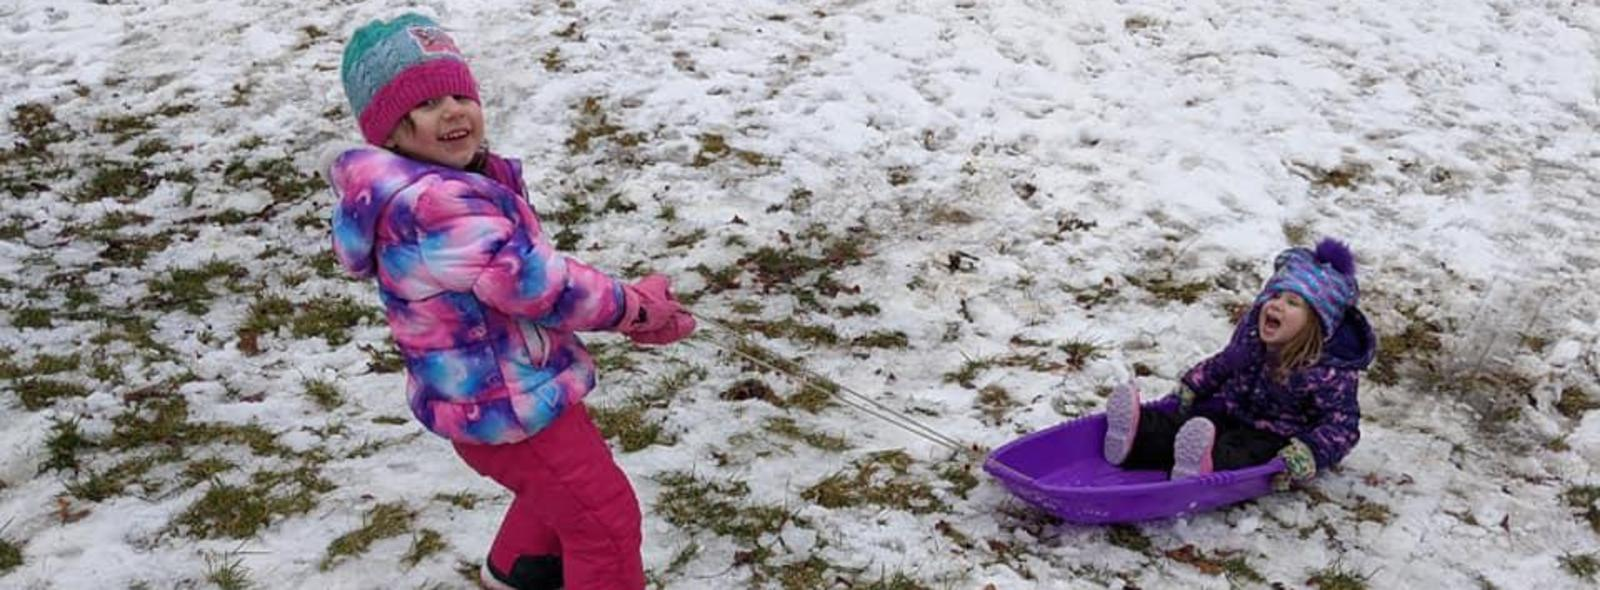 Two kids playing in the snow outside